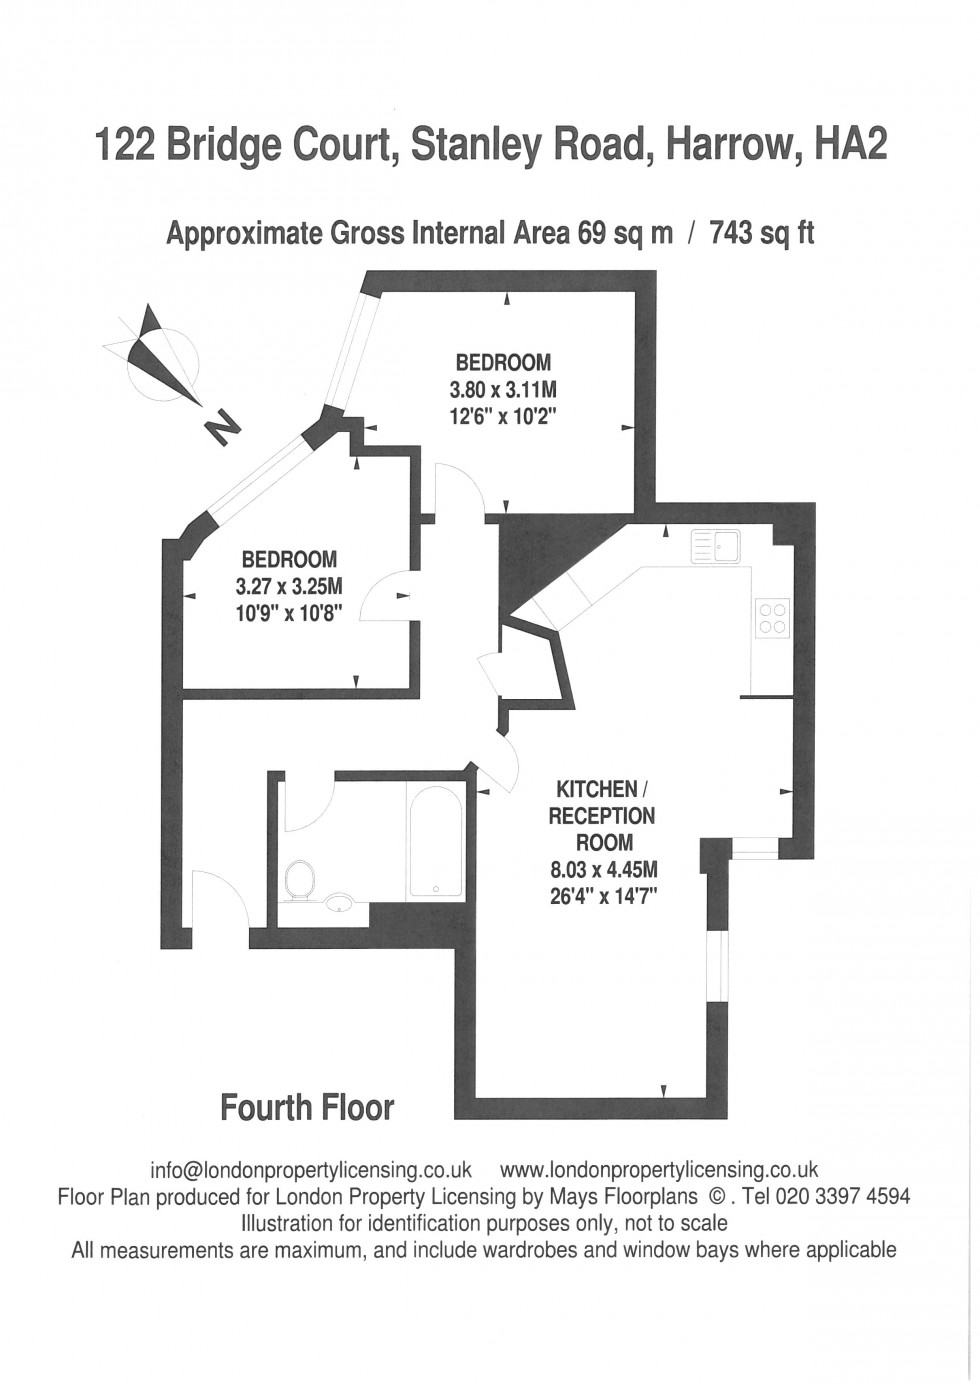 Floorplan for Bridge Court,Stanley Road, Harrow